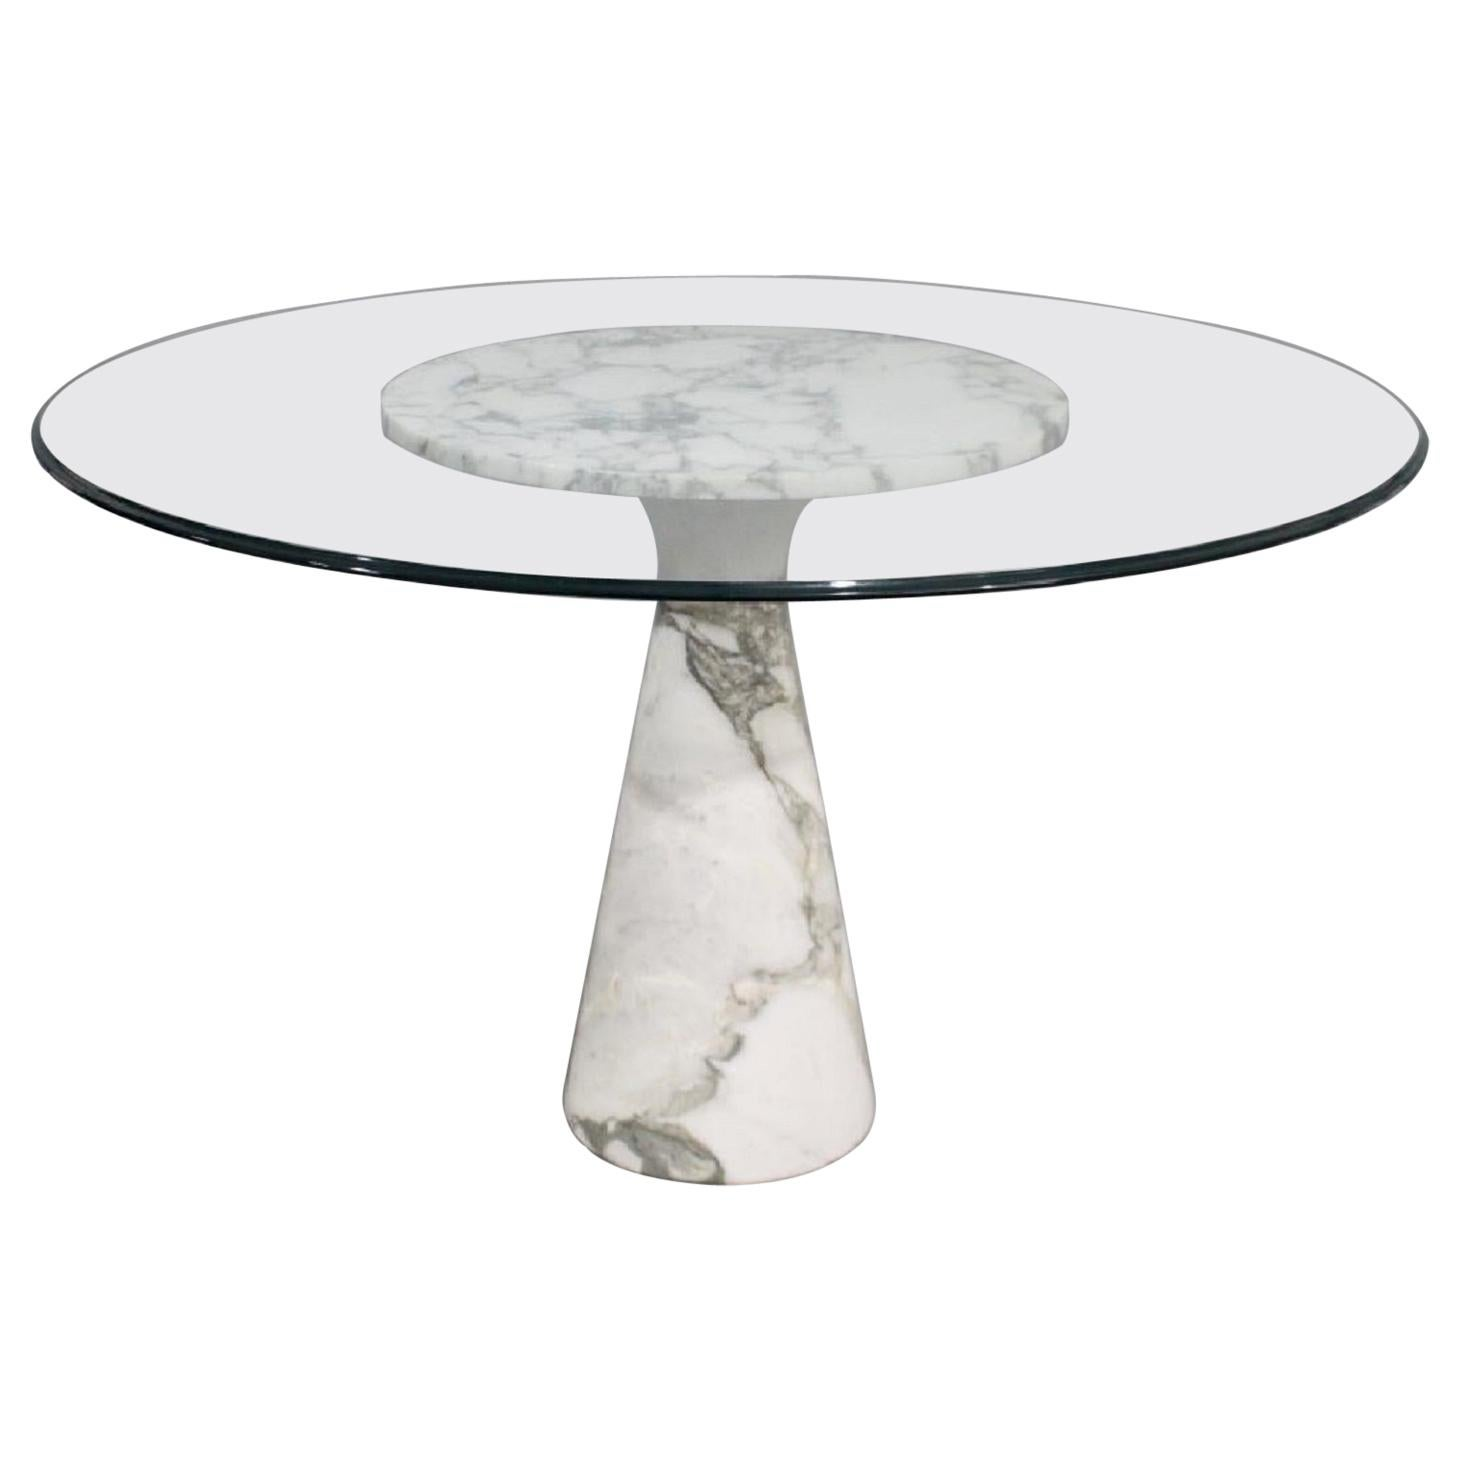 Midcentury Carrera Marble and Glass Centre Table, Manner of Angelo Mangiarotti